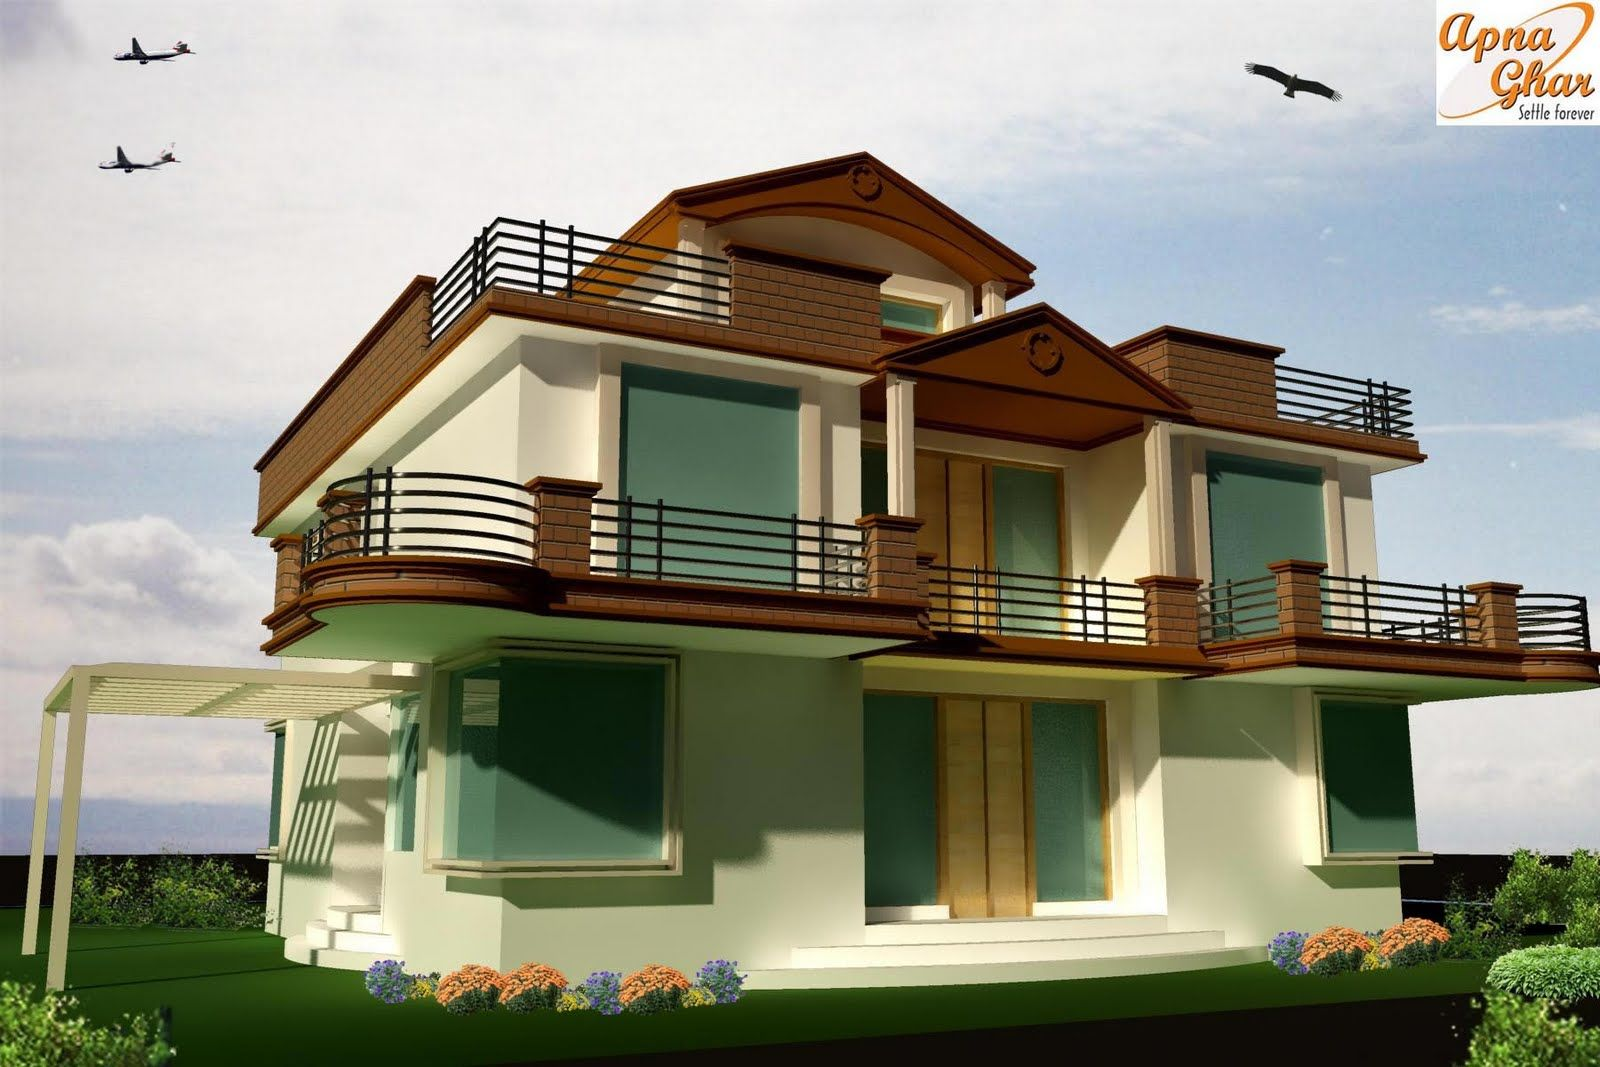 Architectural designs modern architectural house plans for Architectural design plans